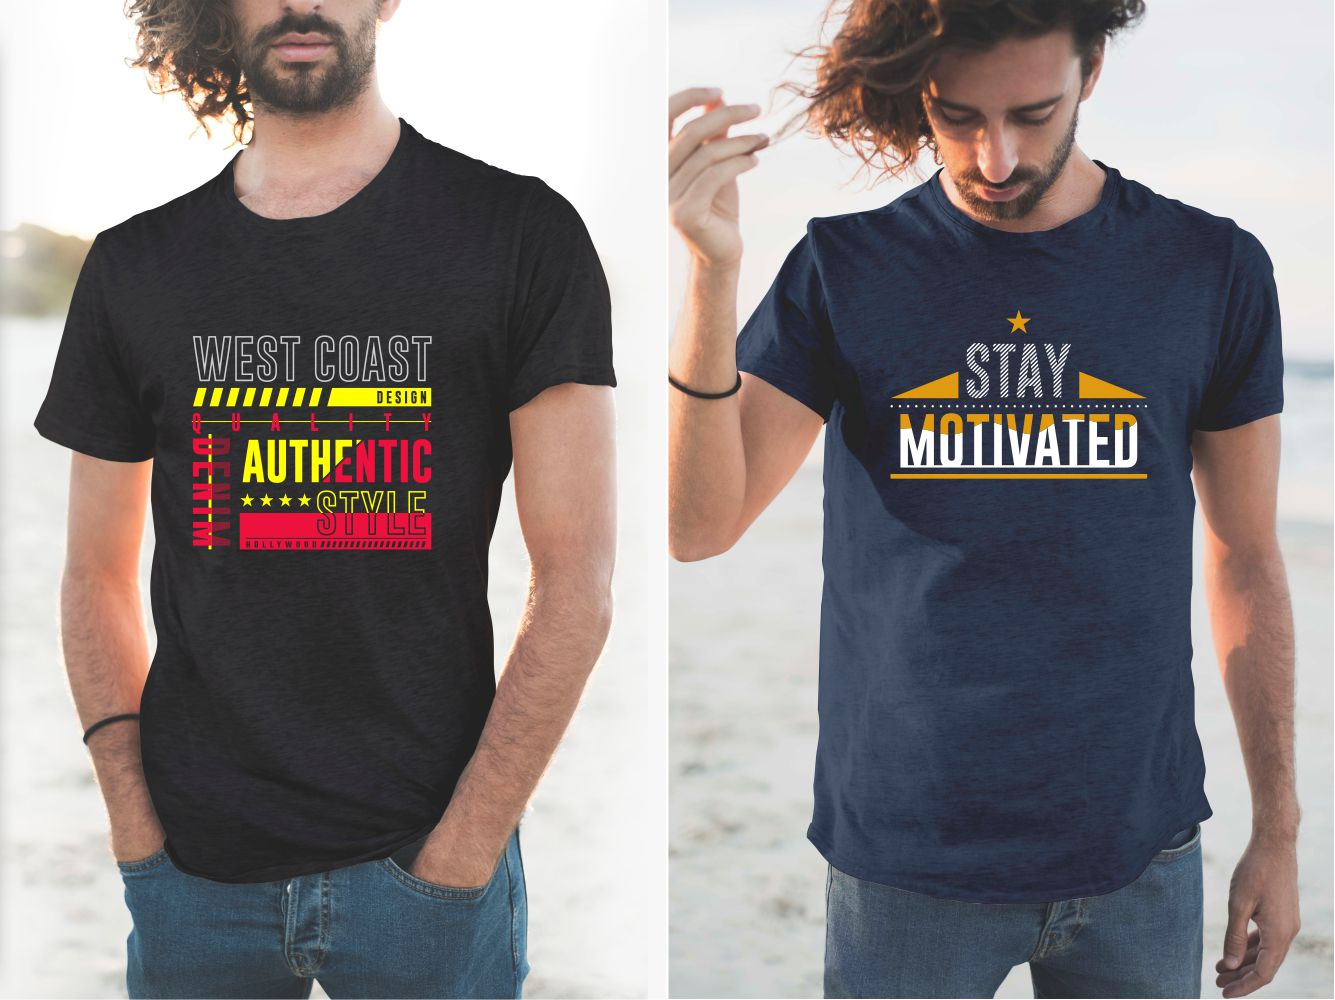 Blue and black T-shirts with bold lettering and graphic elements.